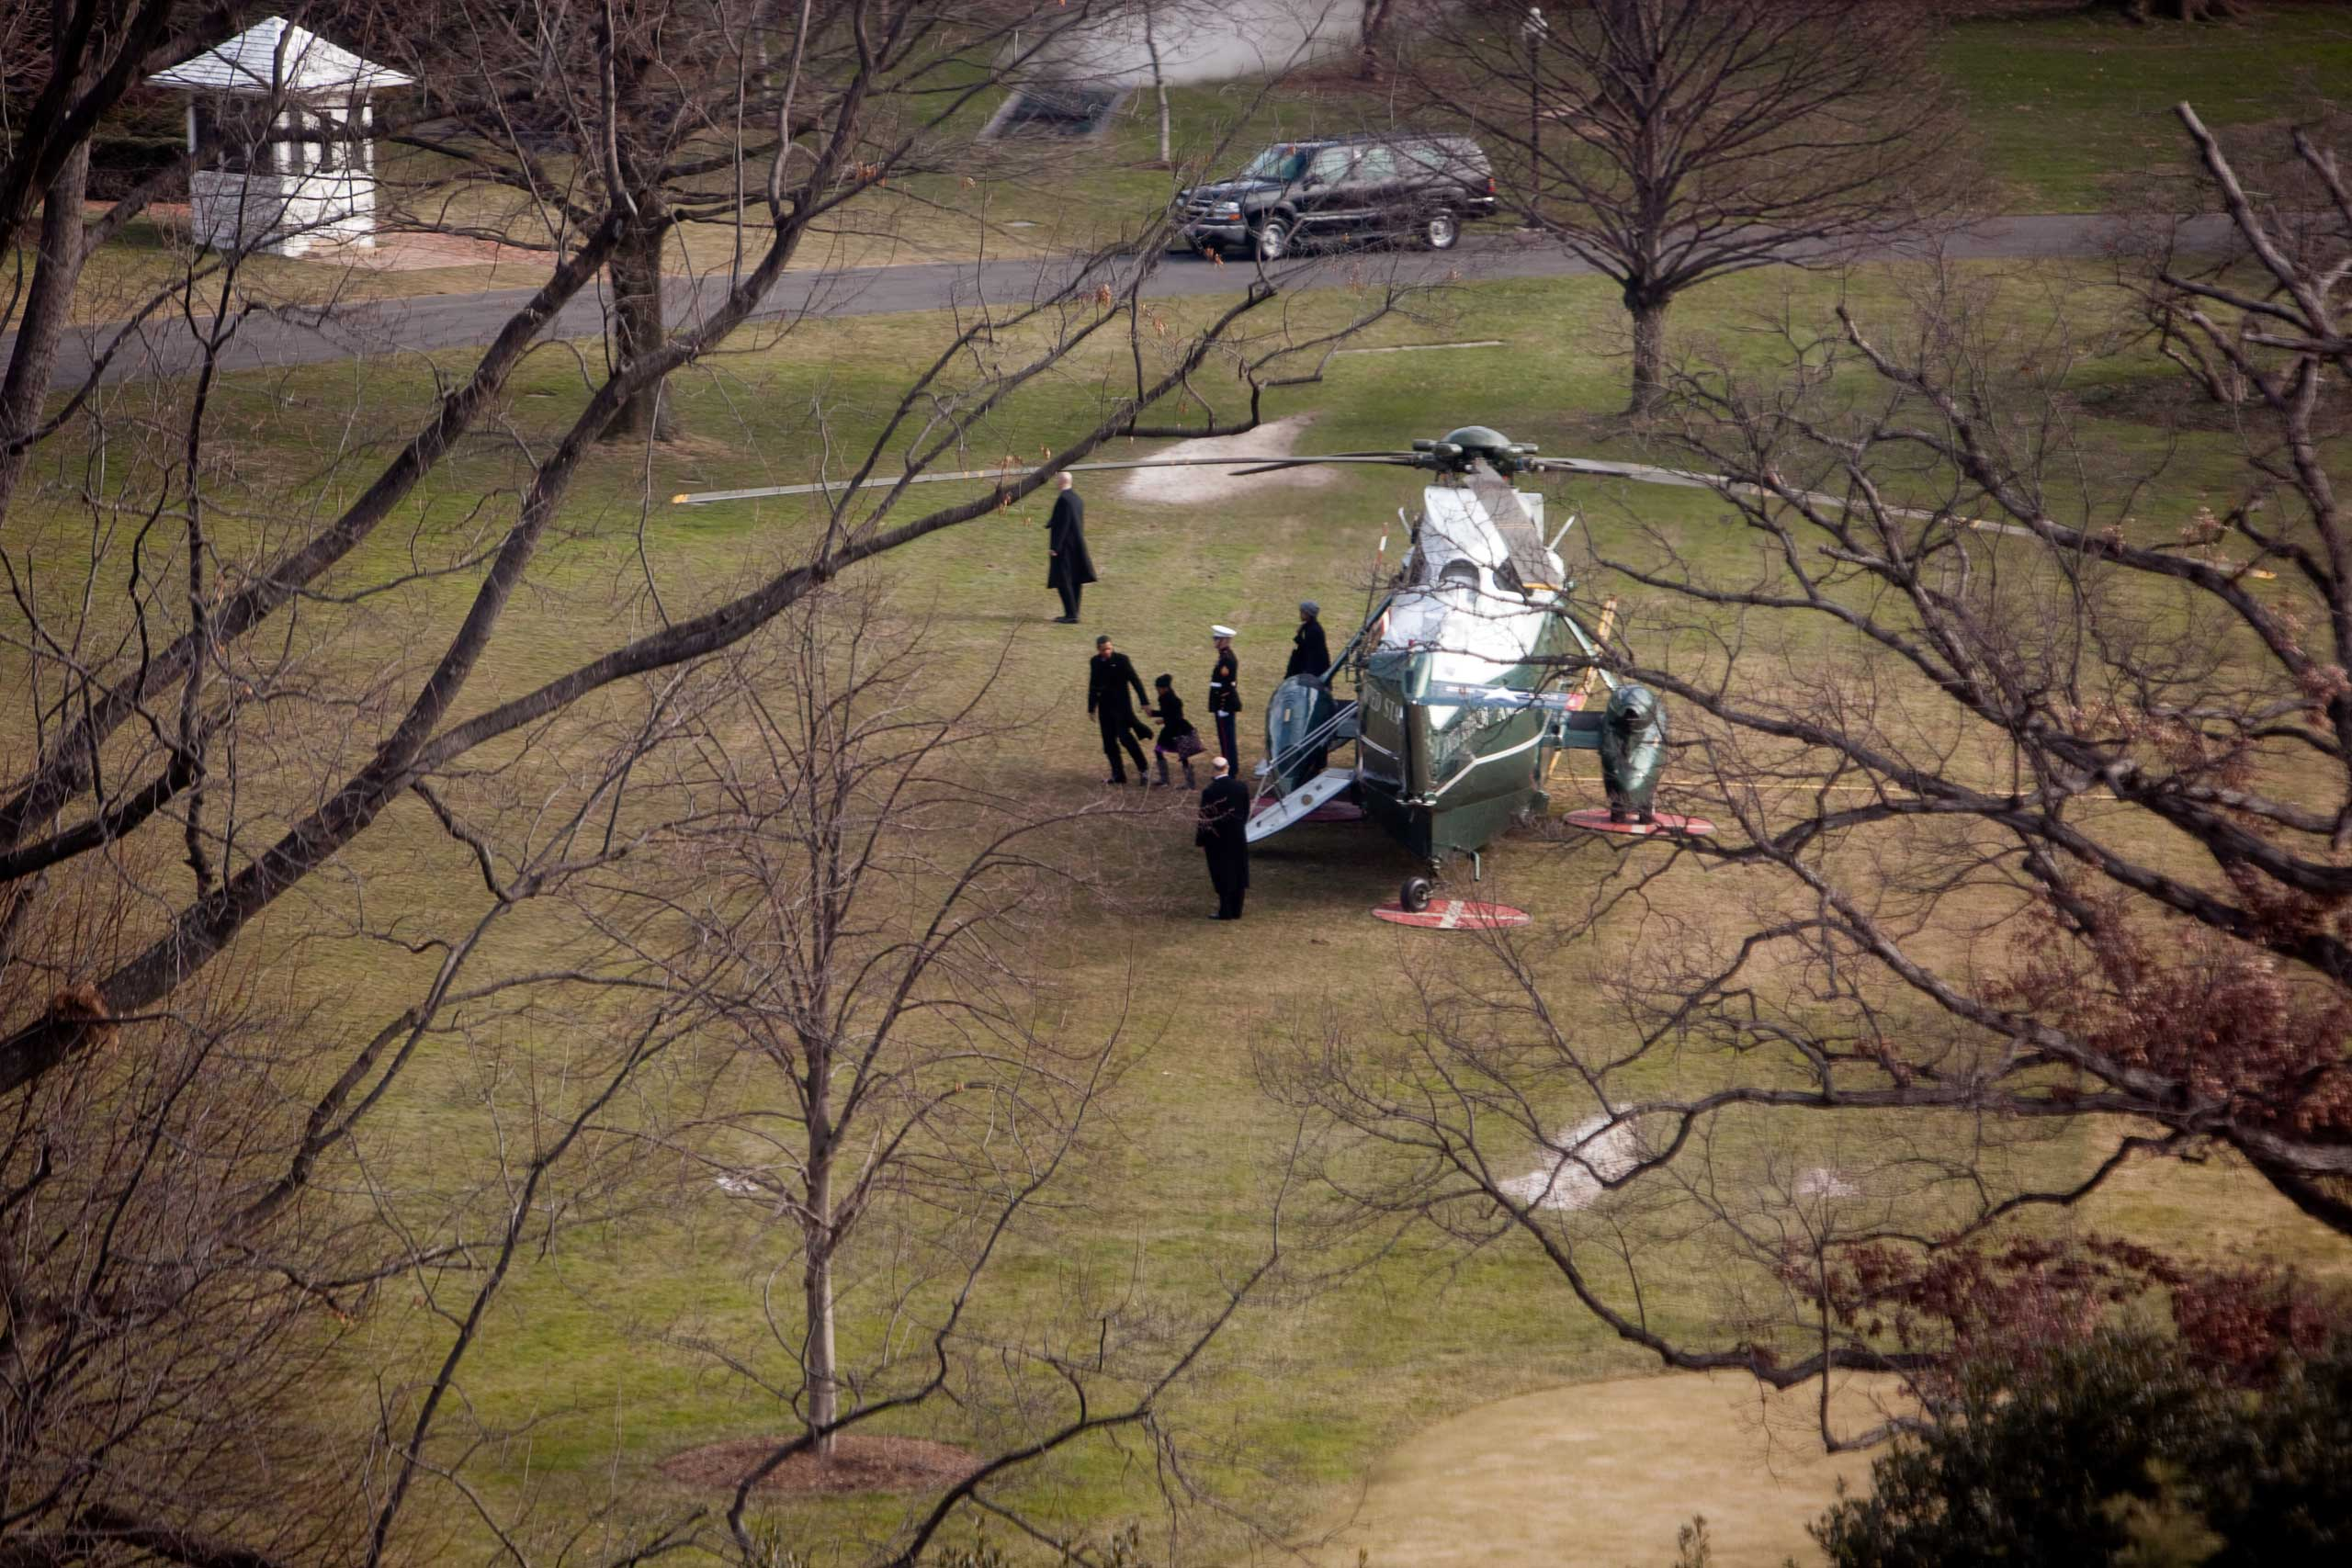 President Barack Obama holds hands with daughter Sasha as they walk away from Marine One on the South Lawn of the White House in Washington D.C. after arriving home from their vacation in Hawaii, with Clancy facing outward nearby, on Jan. 4, 2010.